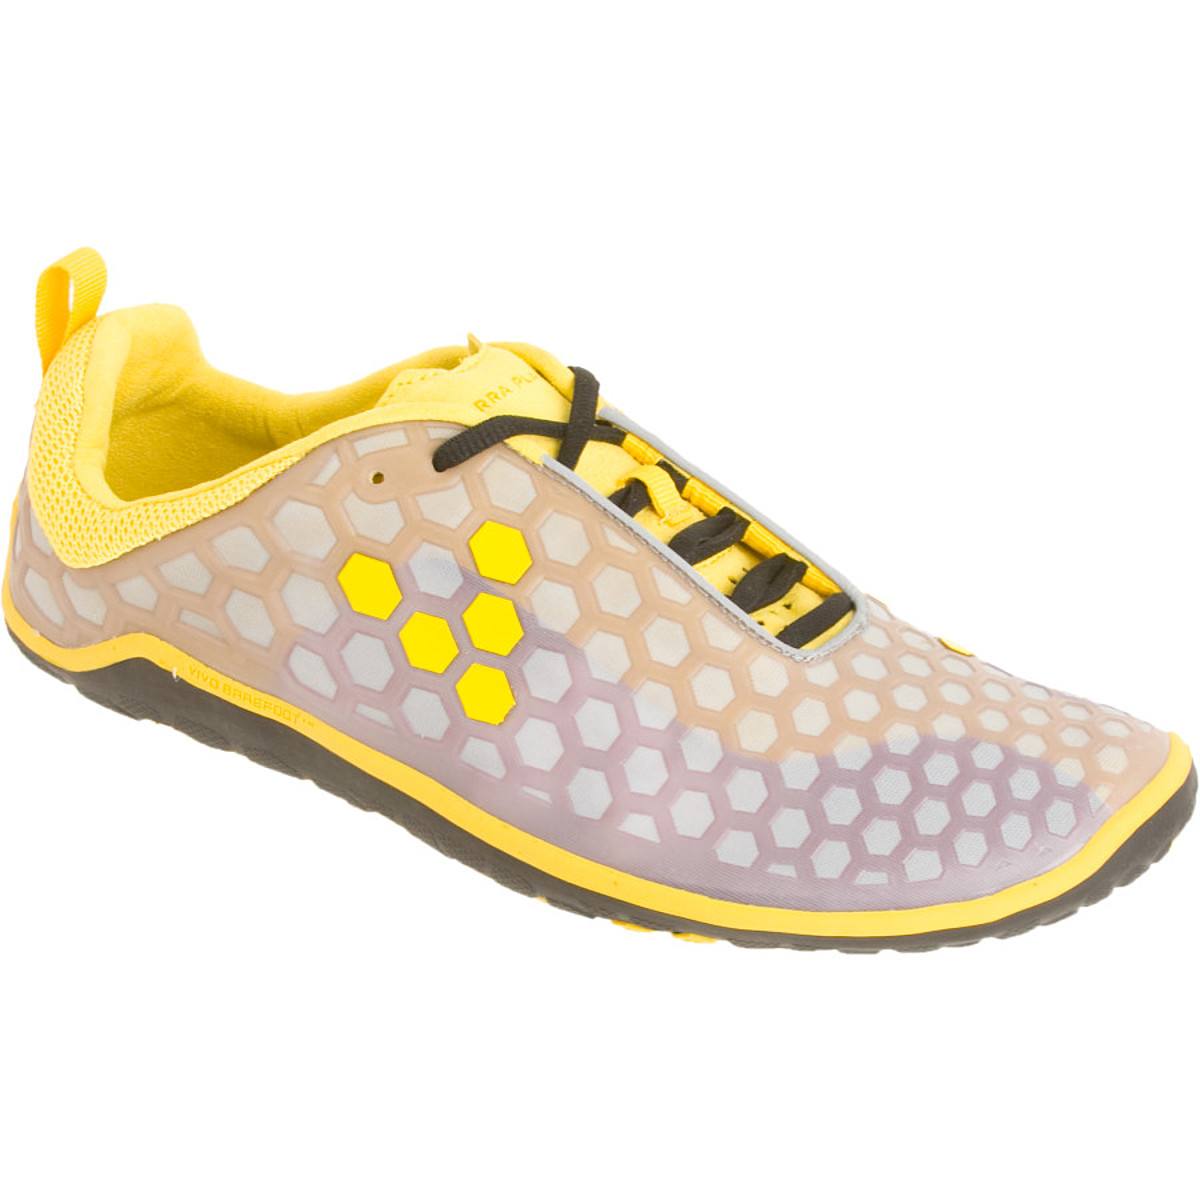 photo: Terra Plana Men's Evo barefoot / minimal shoe